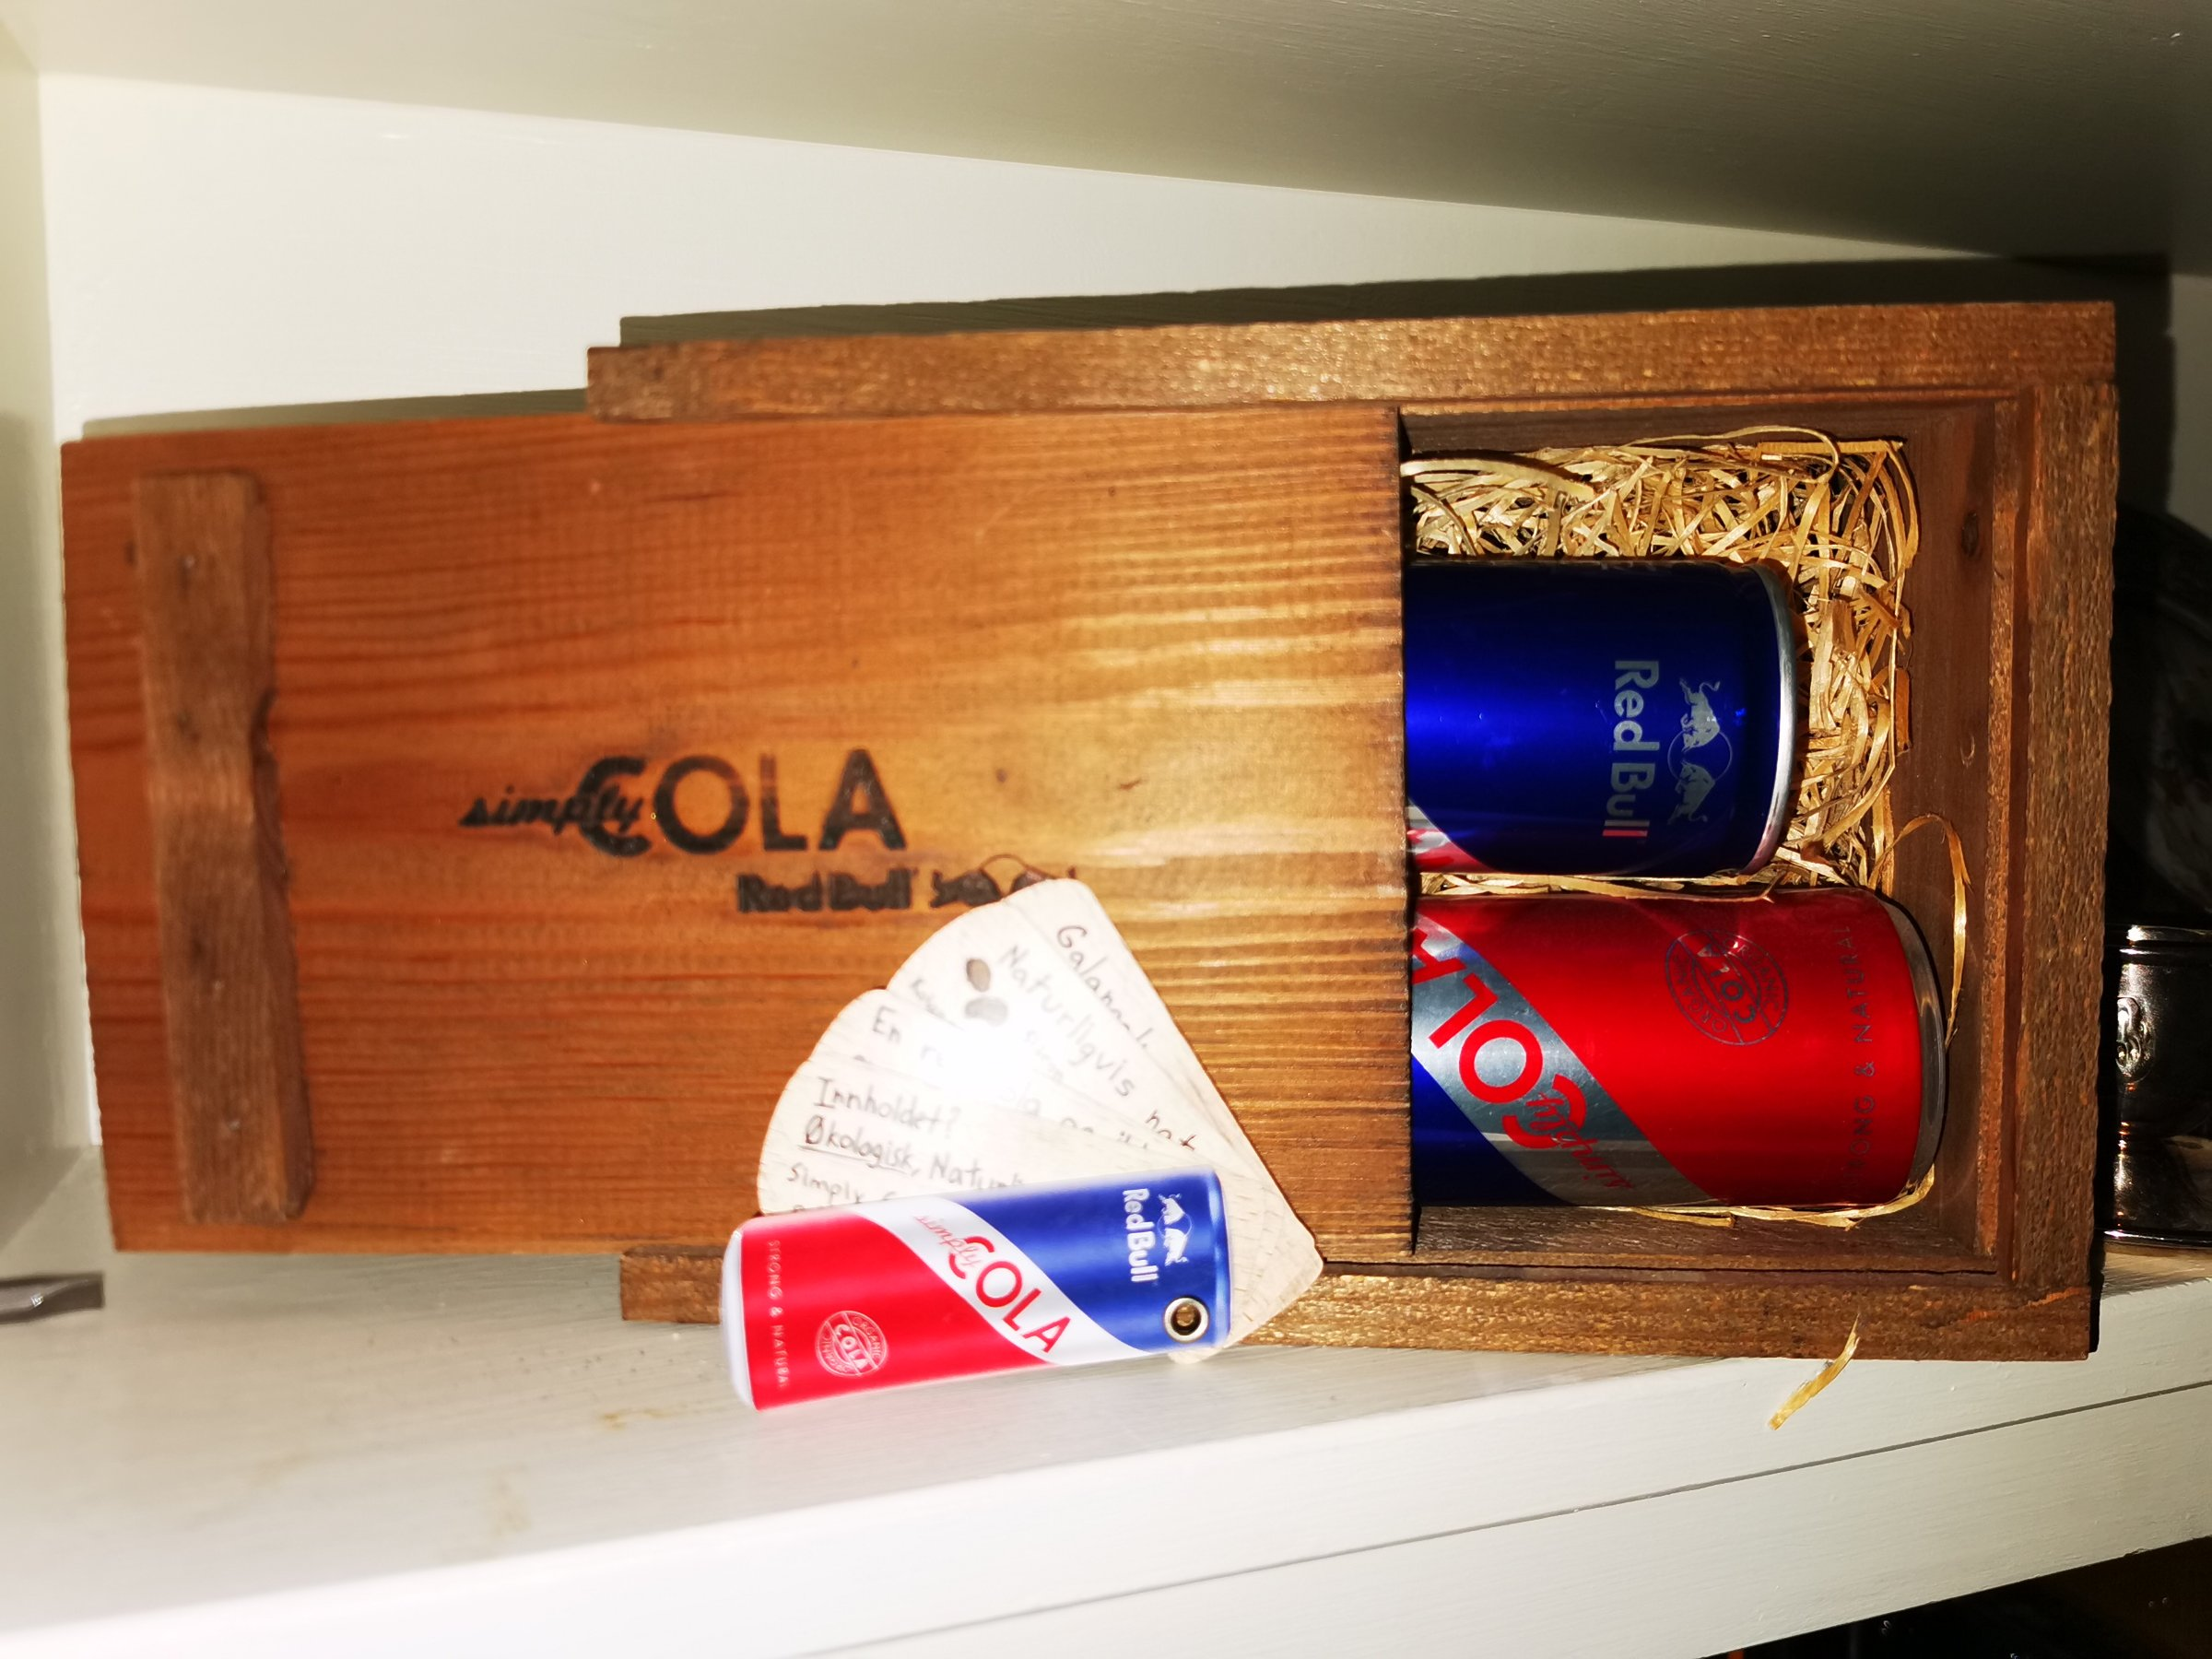 Simply cola redbull